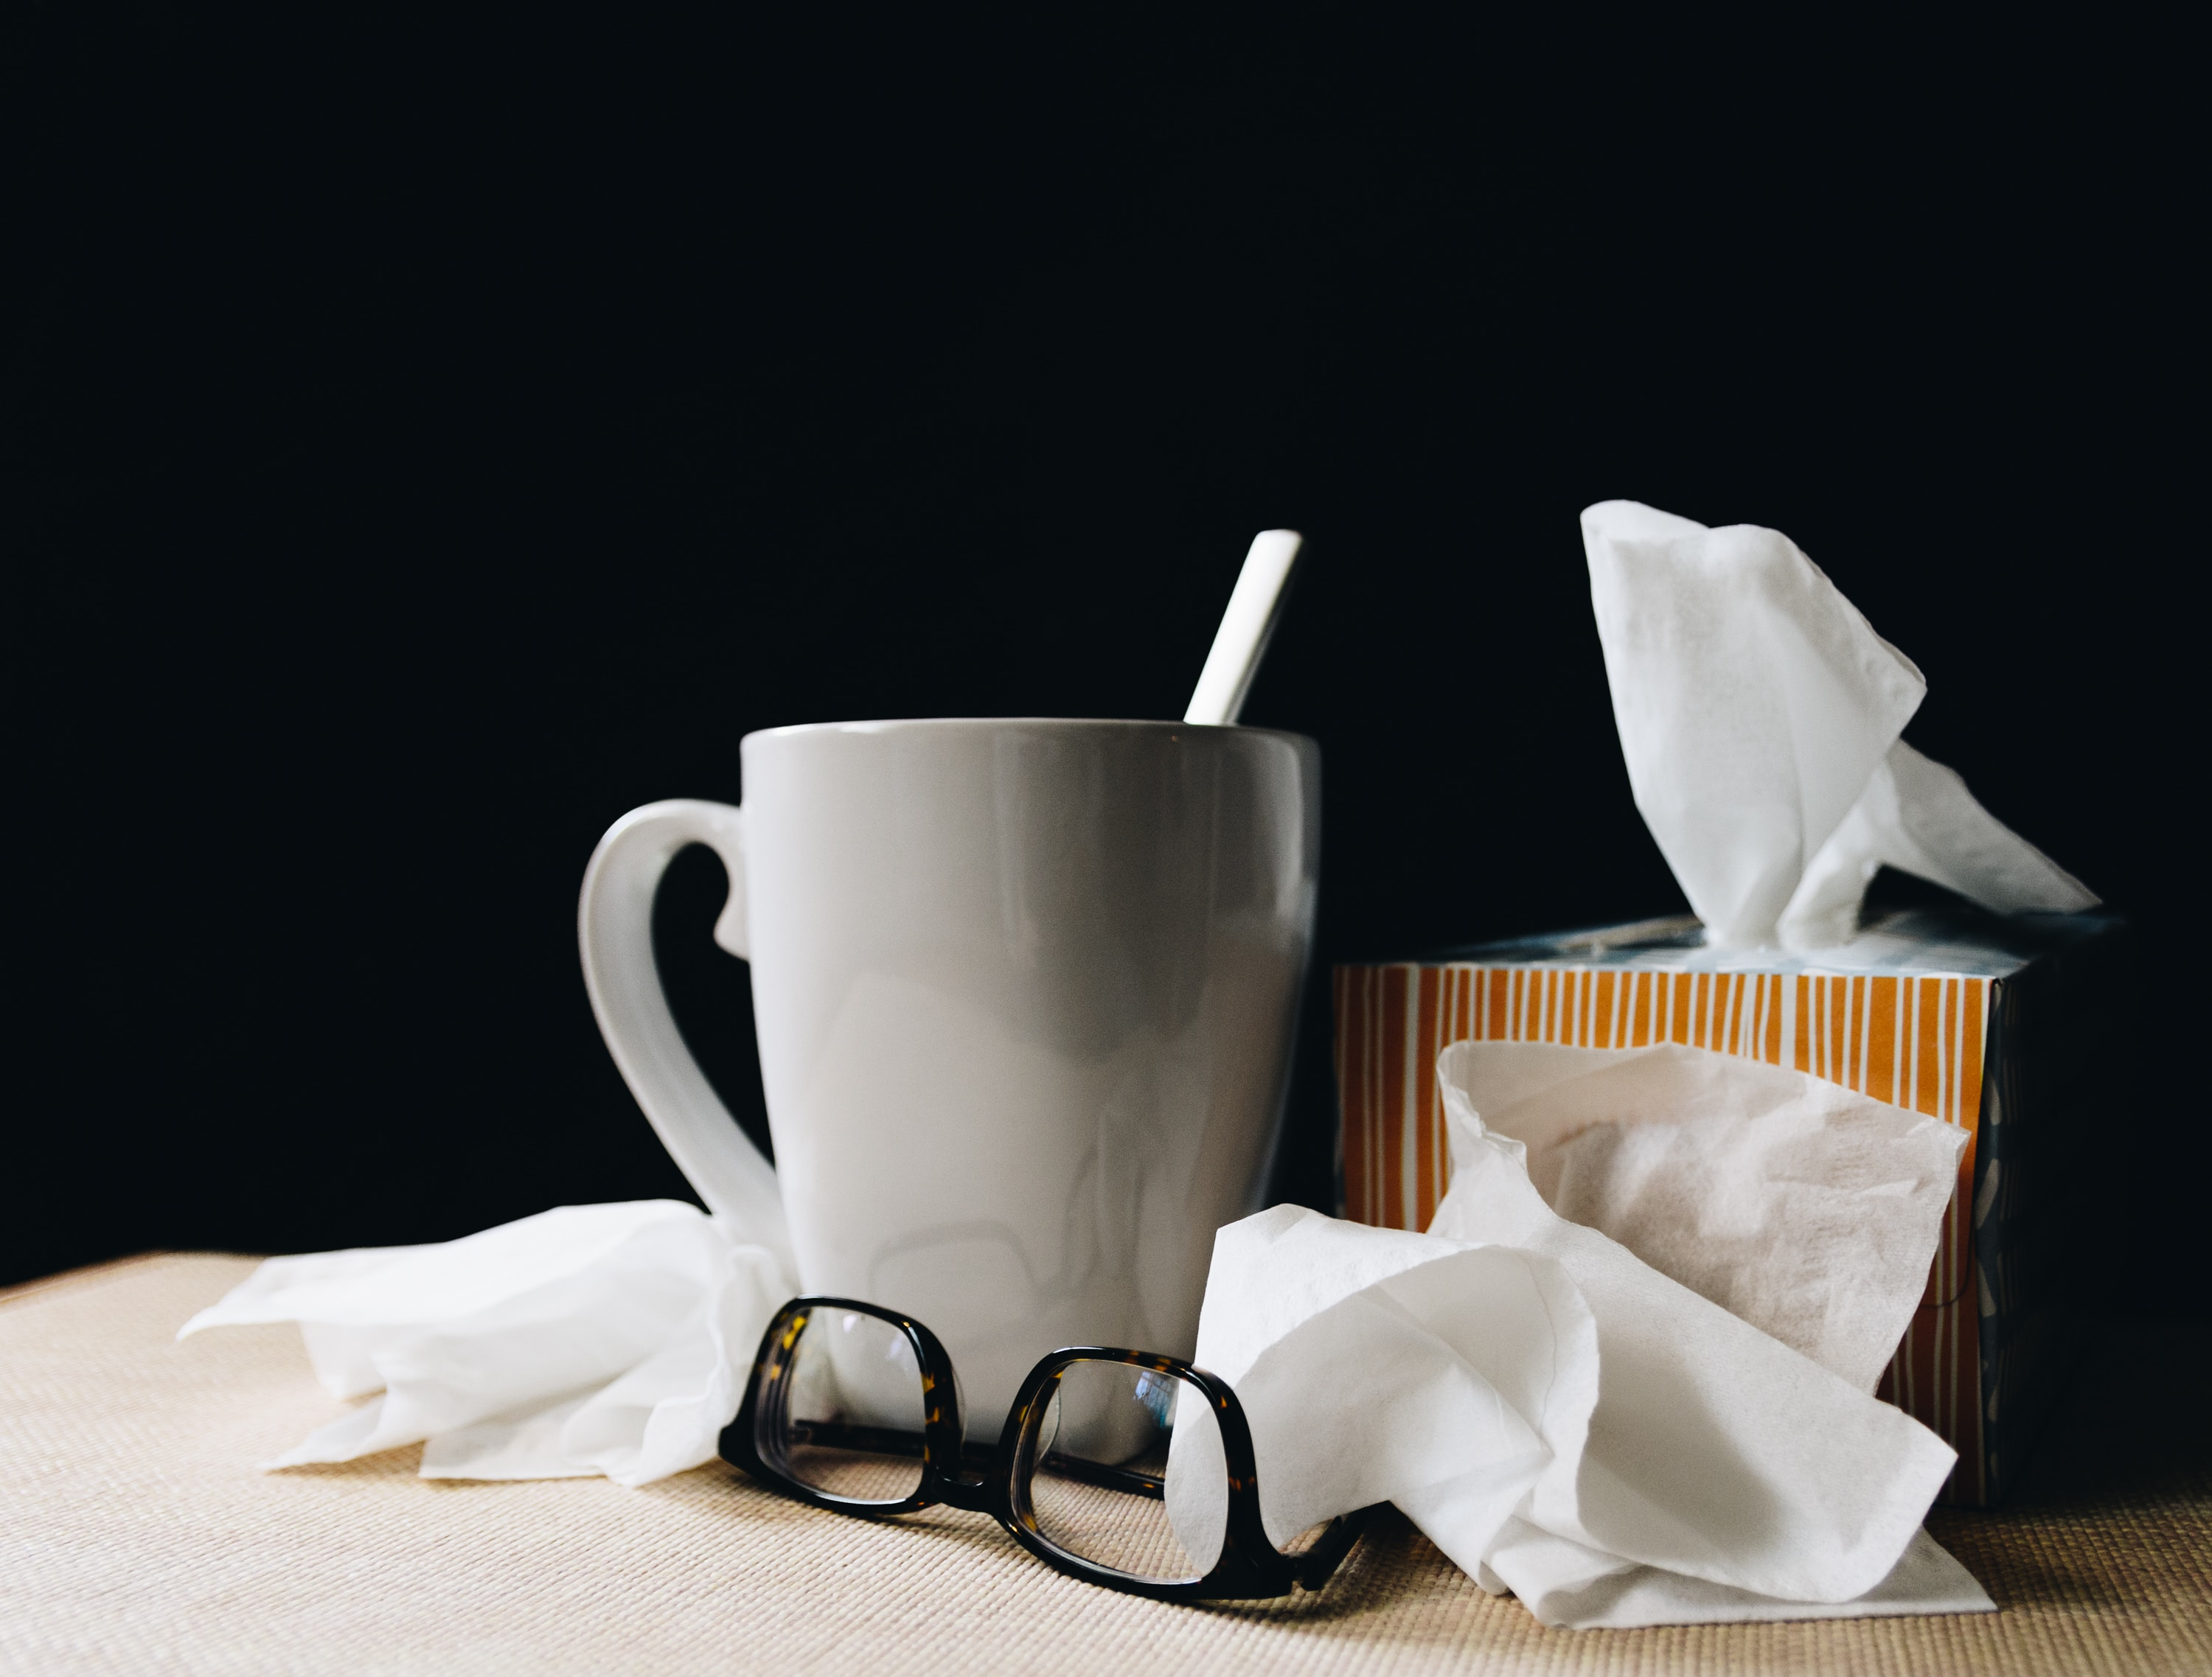 poor indoor air quality can lead to sick building syndrome